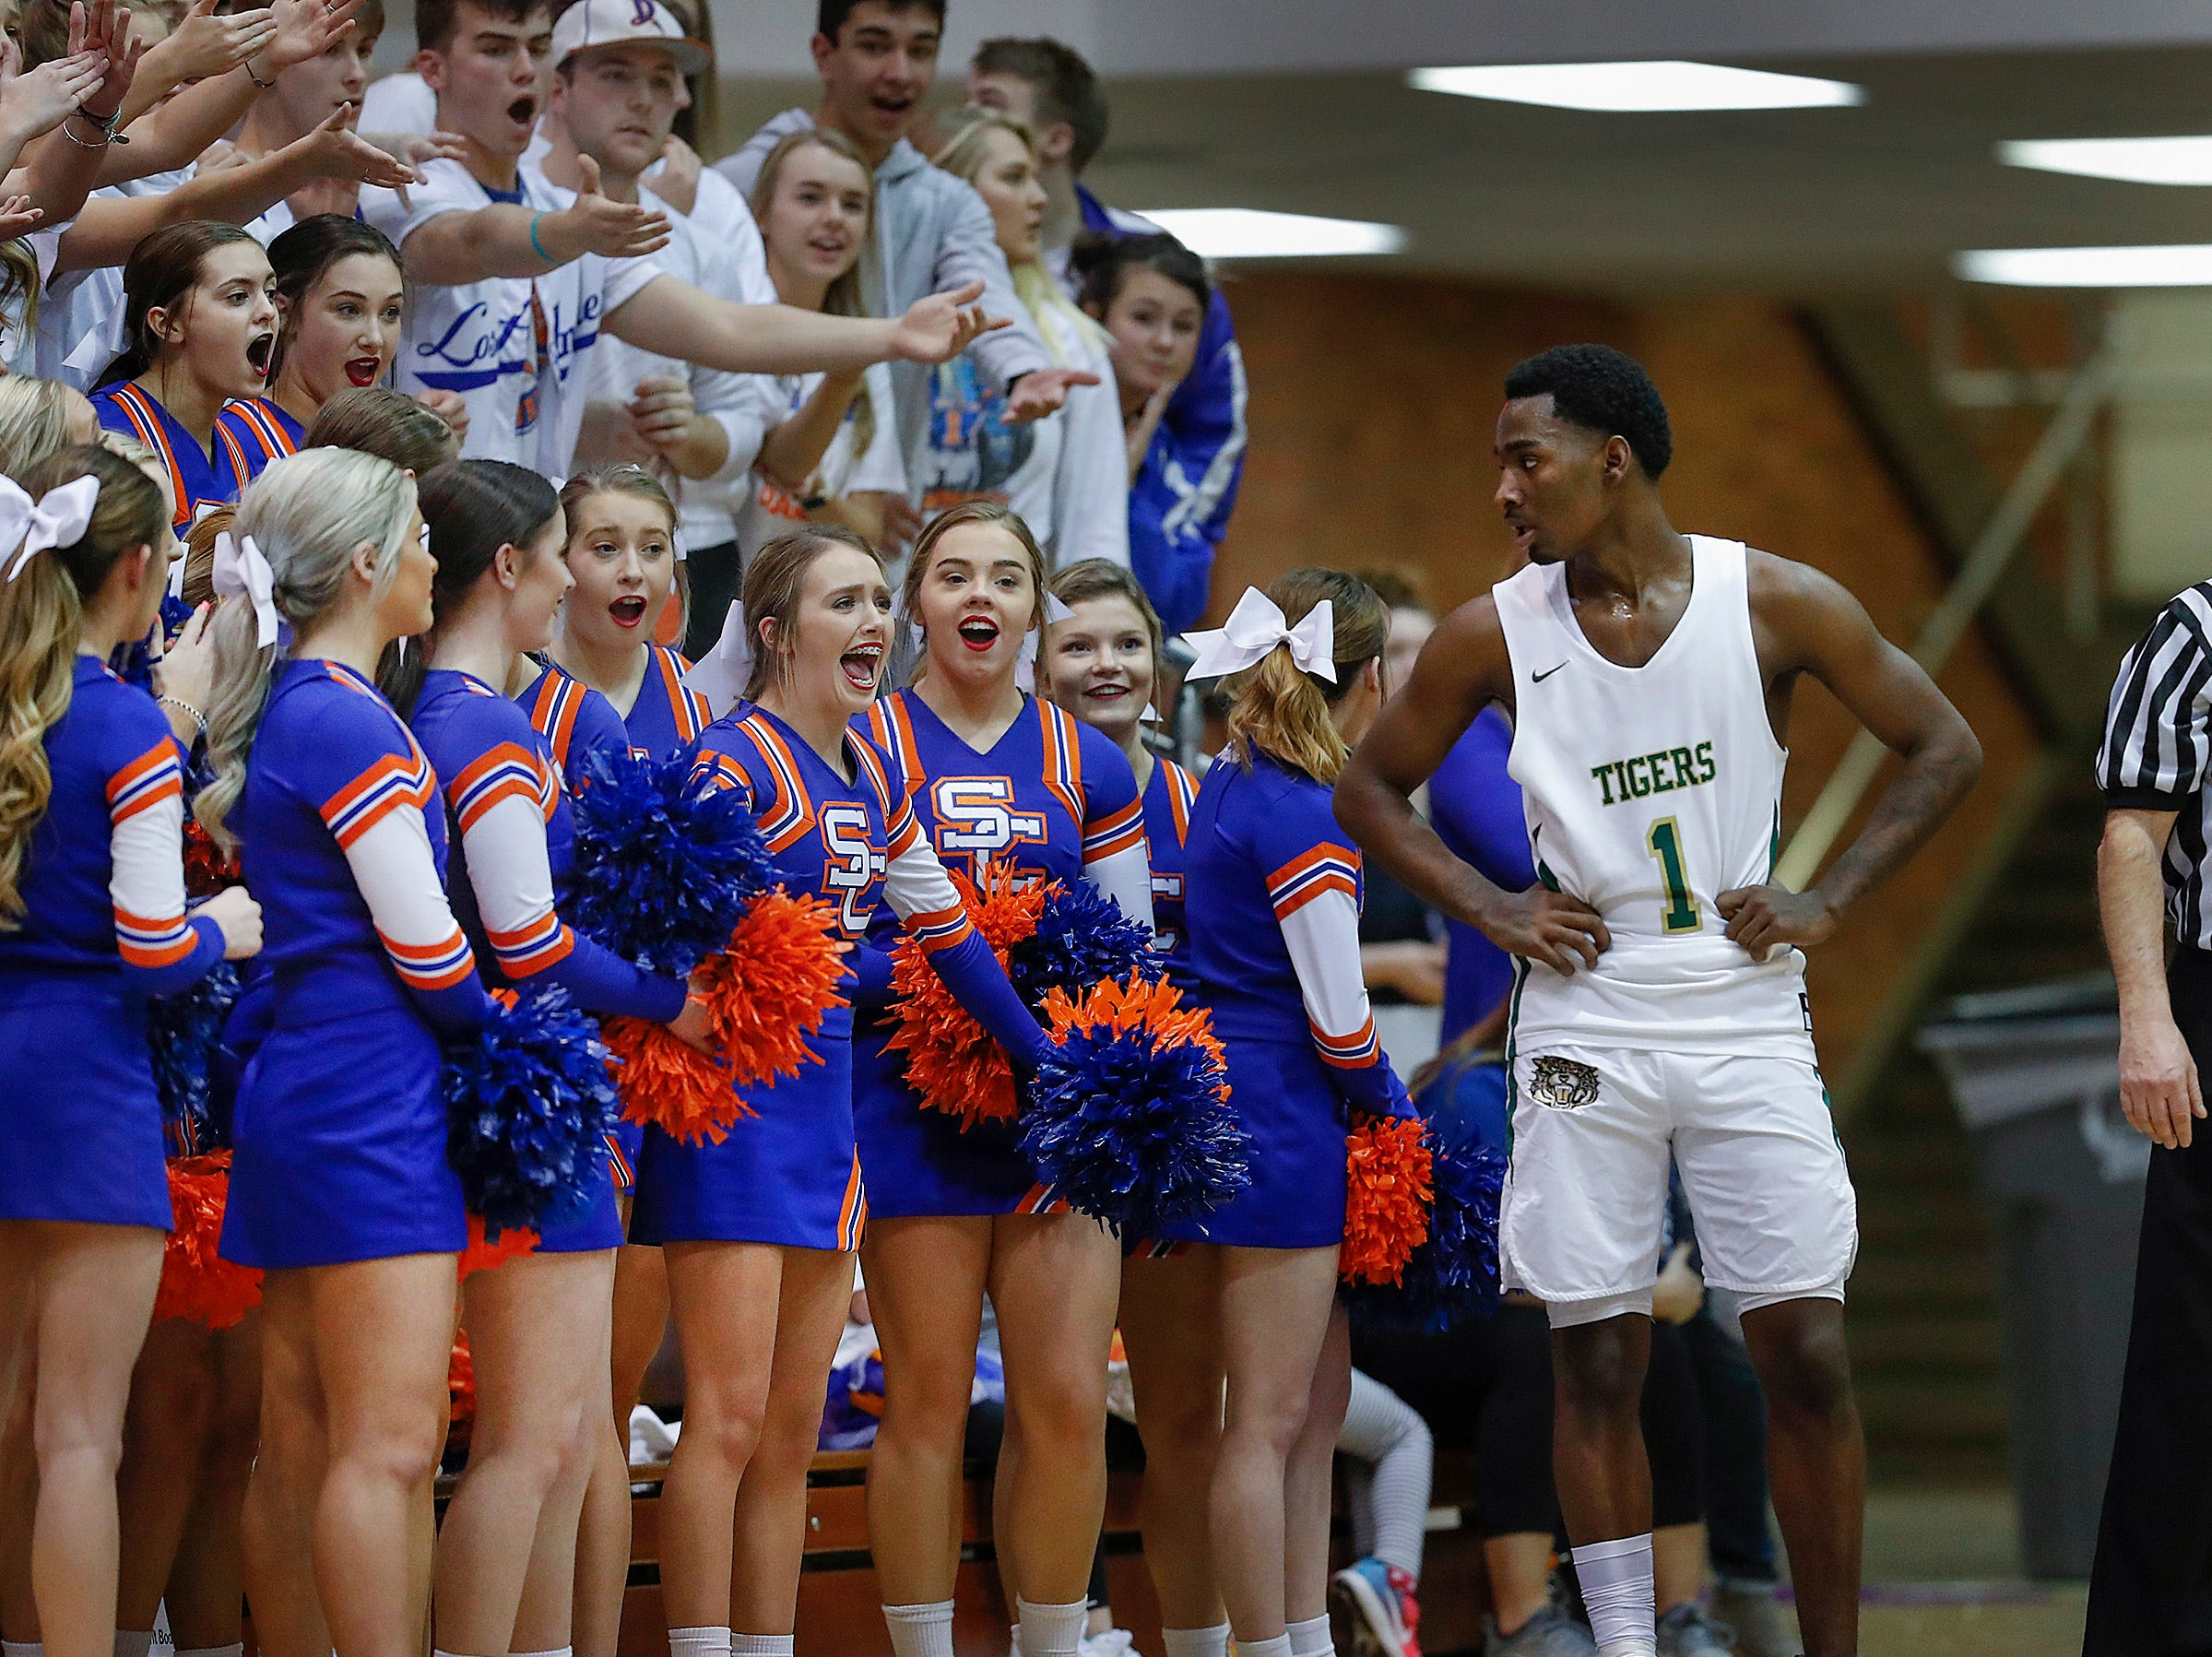 Crispus Attucks Tigers Harold Bennett (1) gets an earful of comments from the Silver Creek Dragons student fan section in the second half of their IHSAA boys' Semi-State basketball game at Seymour High School gym in Seymour IN, on Saturday, Mar. 16, 2019. The Silver Creek Dragons defeated the Crispus Attucks Tigers 72-69.